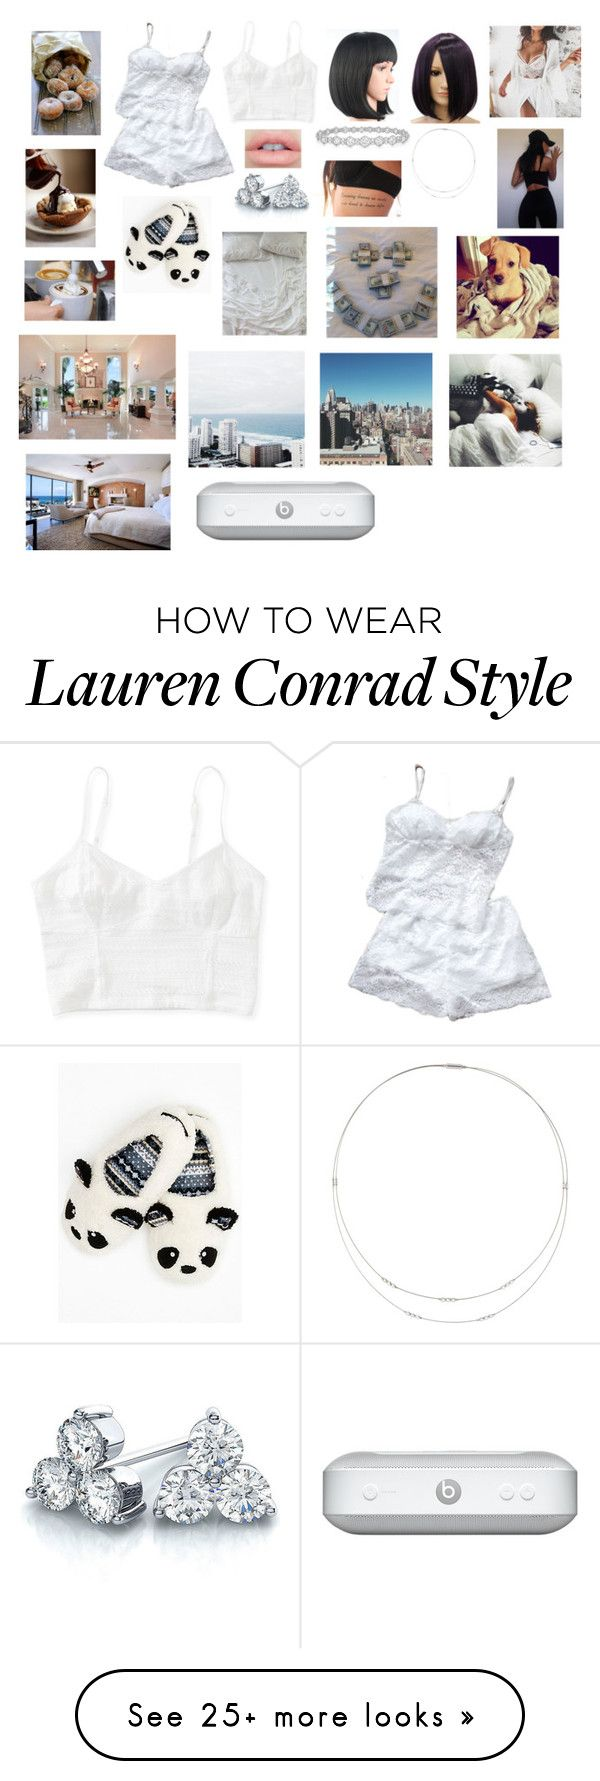 """""""GoodMorning"""" by darkeyesab on Polyvore featuring Aéropostale, Concord, Lauren Conrad, Suzy Levian, Epoque and Wigs2You"""